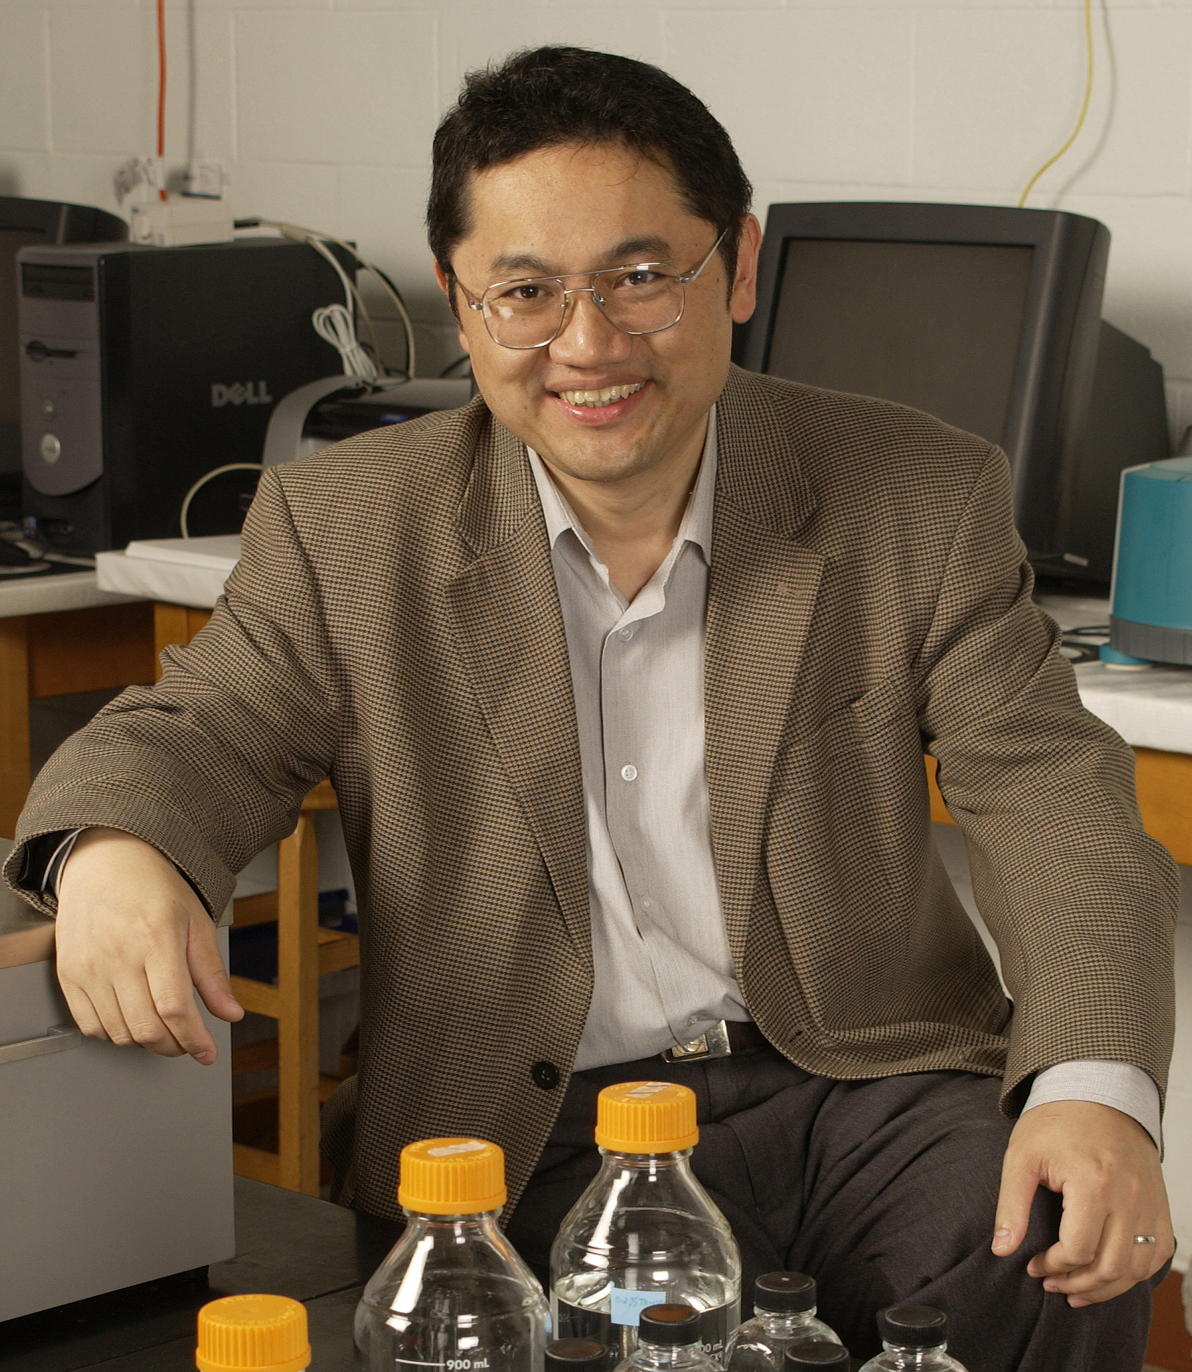 Dongping Zhong, the Robert Smith Professor of physics at The Ohio State University. Photo by Jo McCulty, courtesy of The Ohio State University.